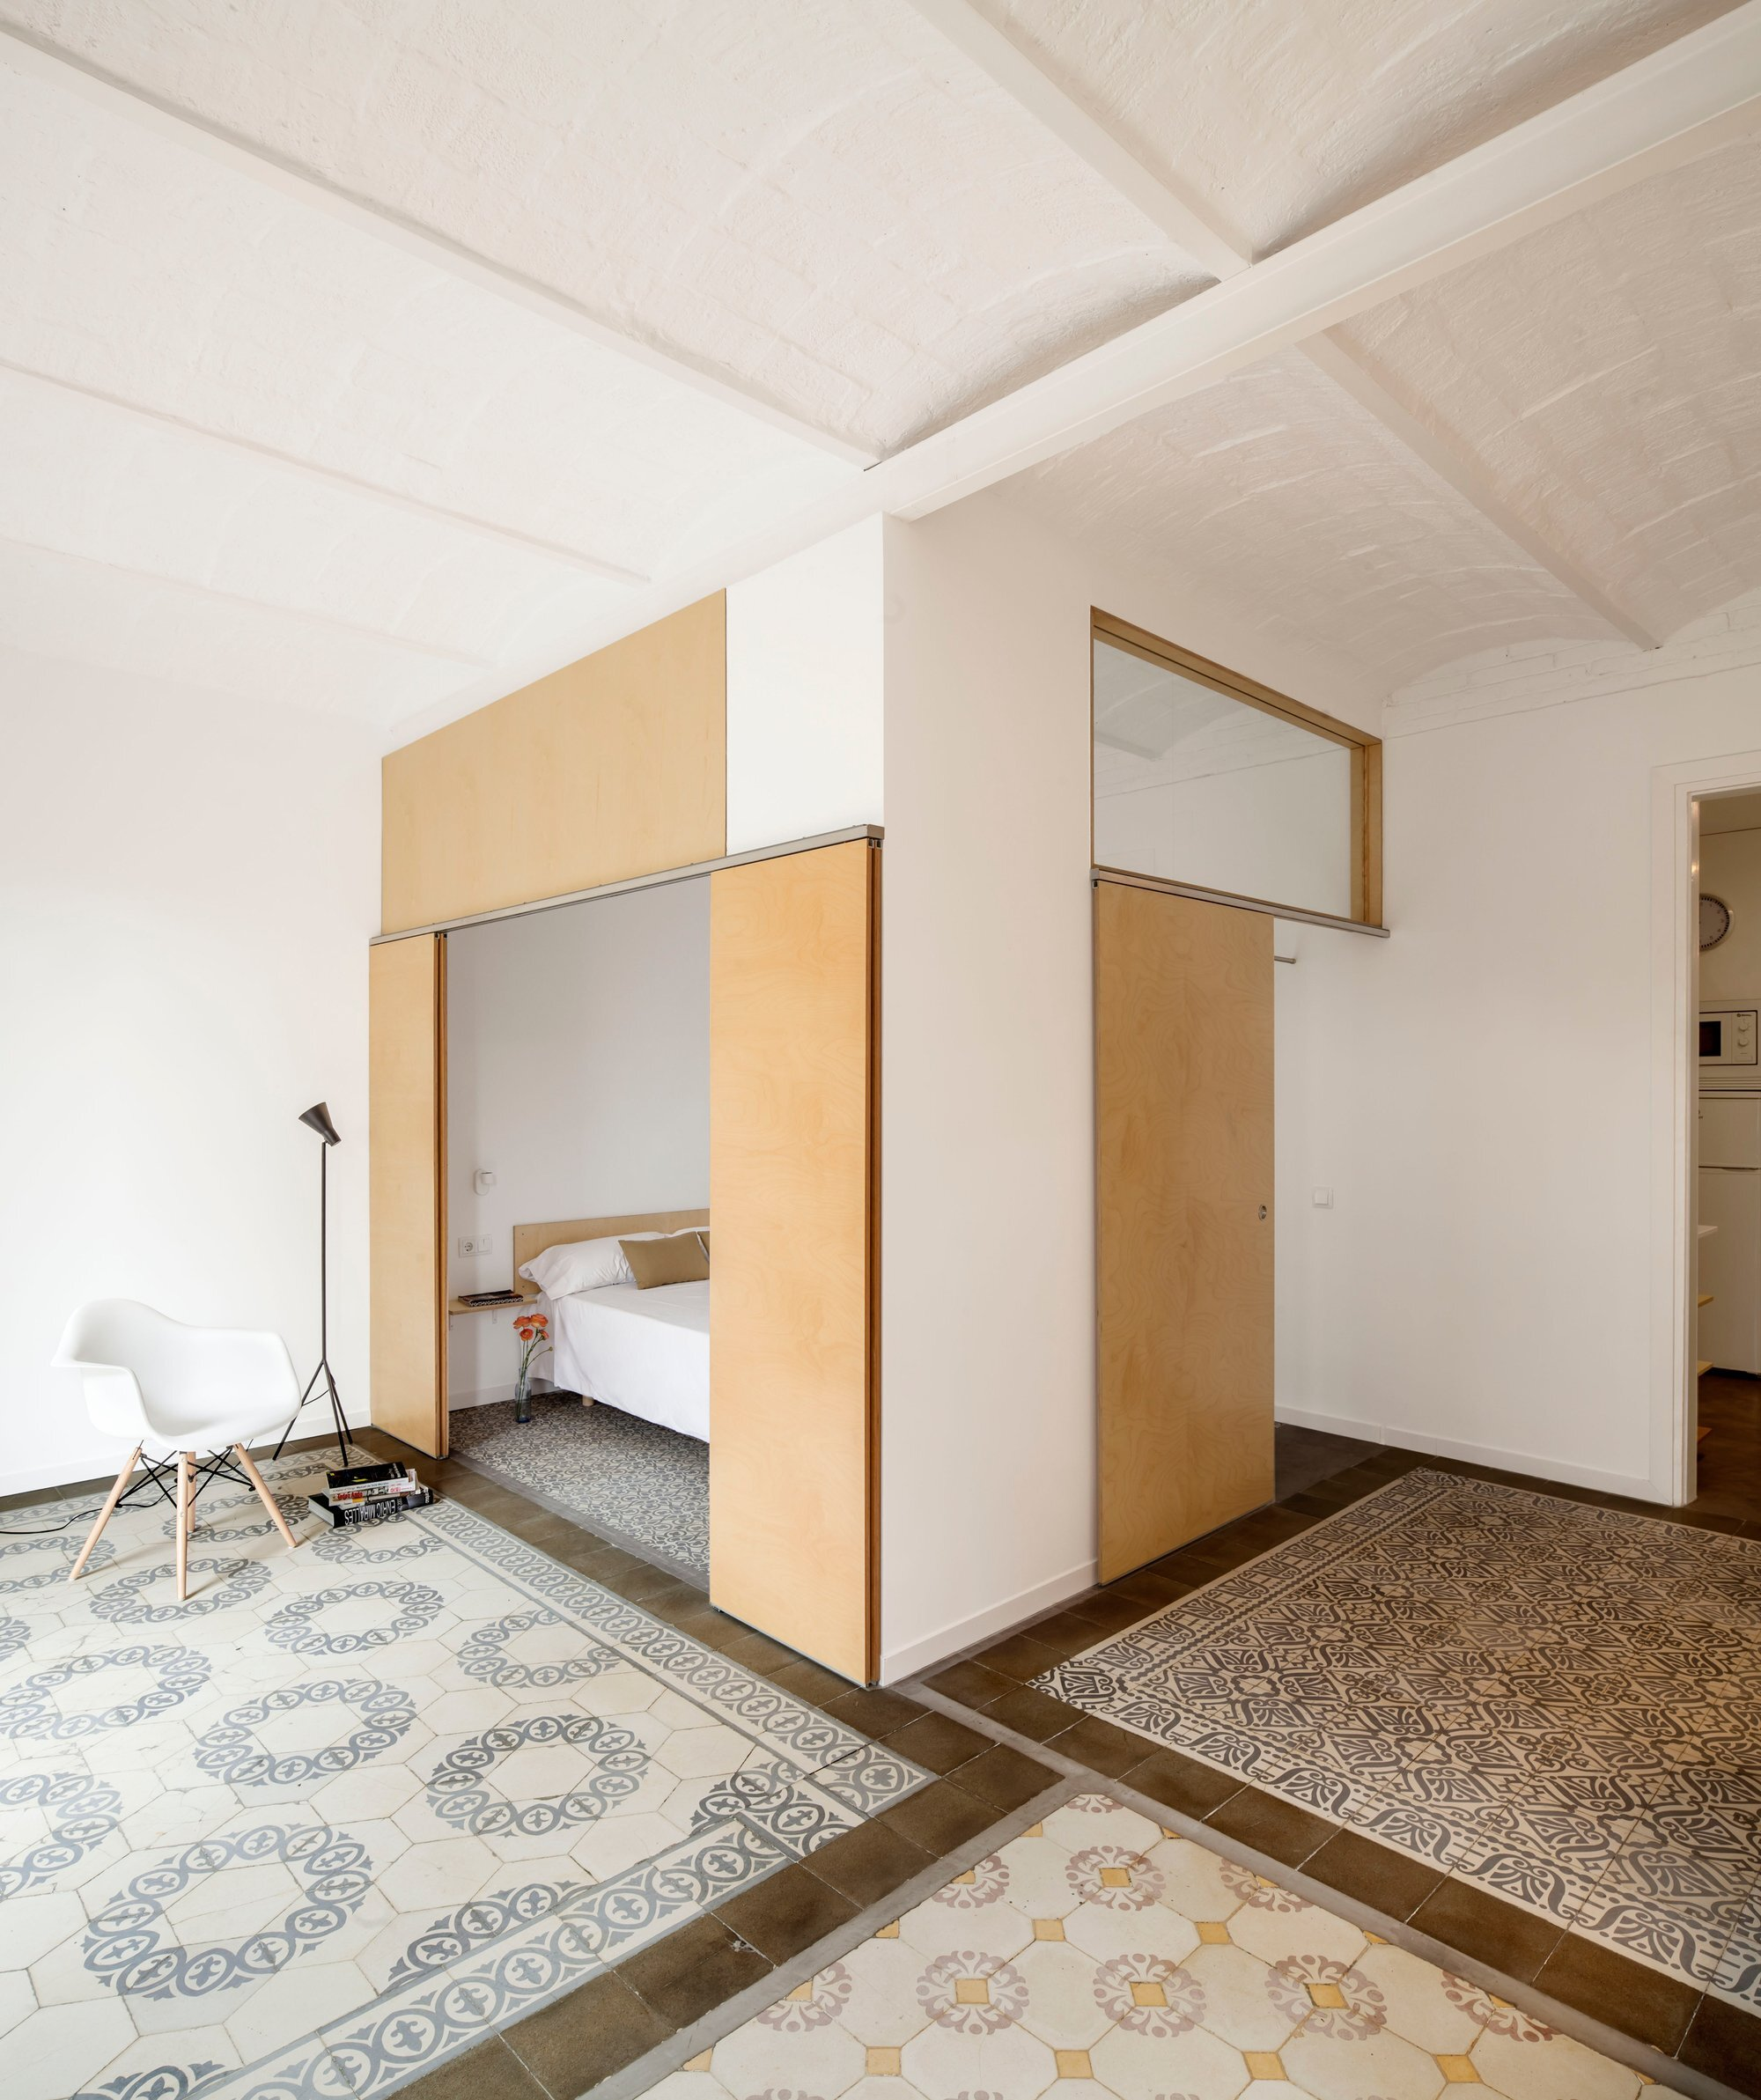 A small apartment renovation in barcelona by adri n elizalde for Small bedroom renovation